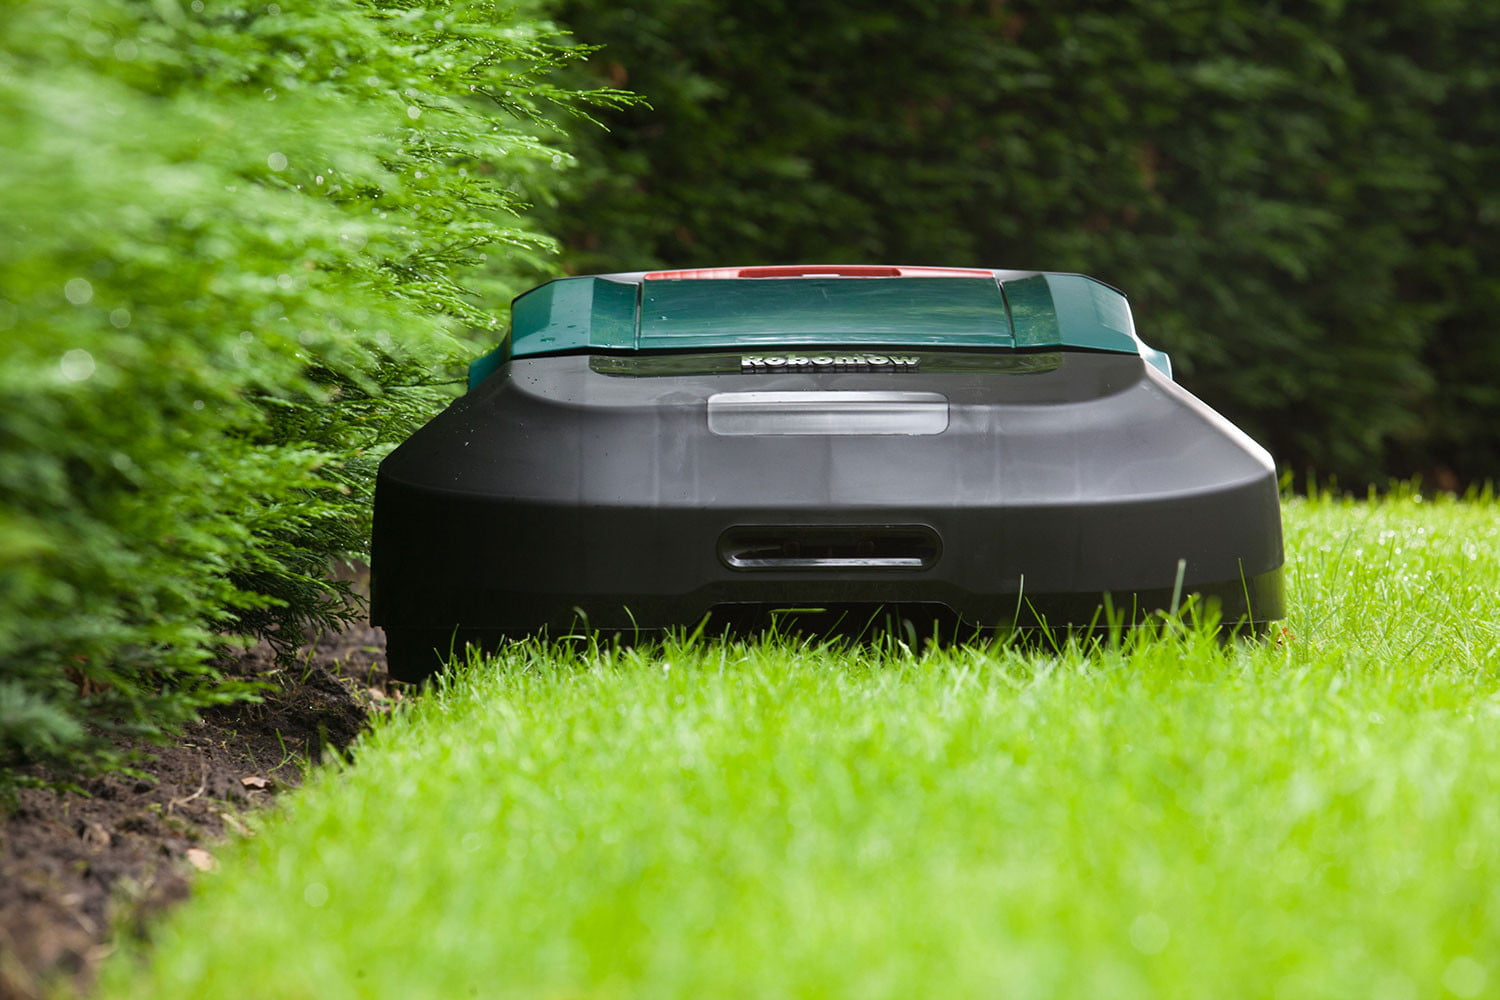 5 household robots that will do annoying chores for you digital trends robomow rs630 robotic lawn mower 2099 fandeluxe Gallery